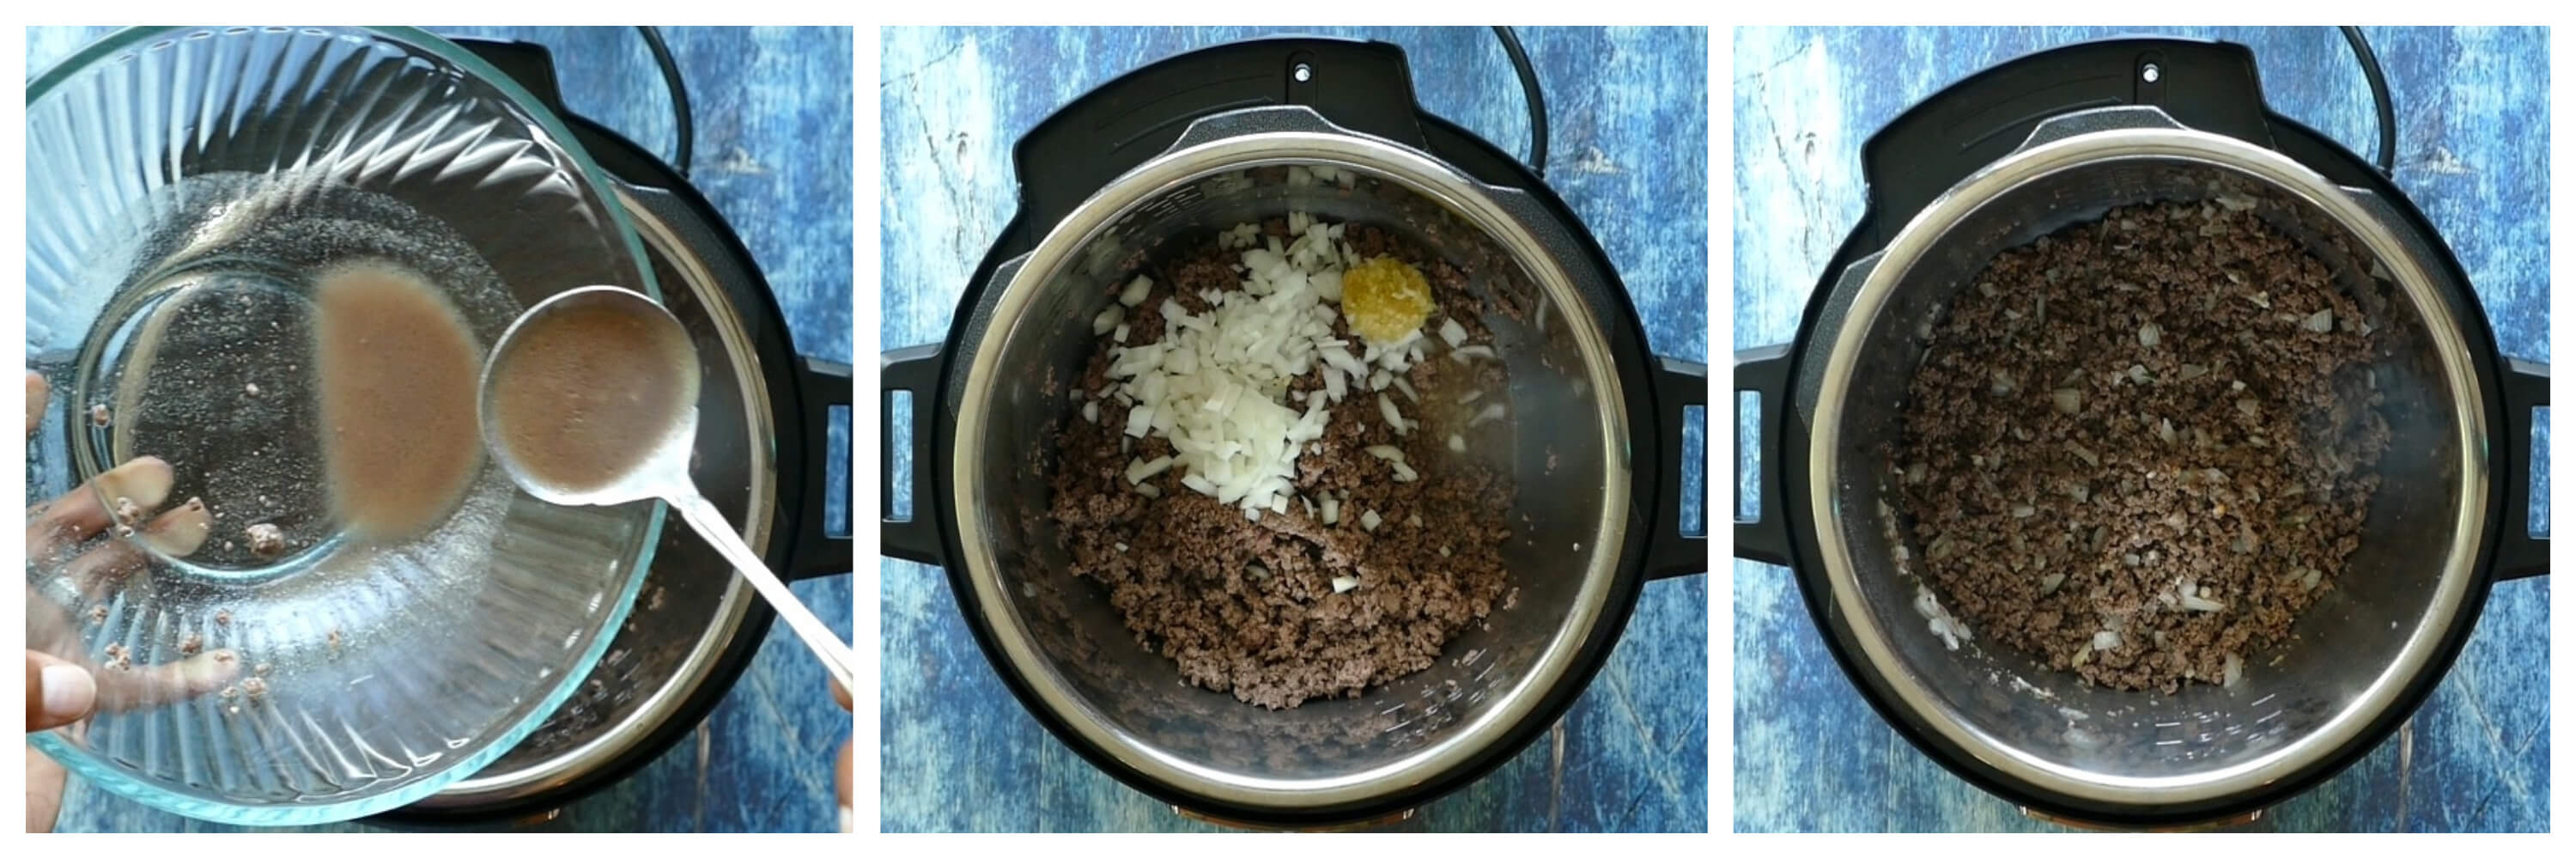 Instant Pot Spaghetti Instructions 2 collage - drain fat, onion and garlic, cooked beef - from Paint the Kitchen Red